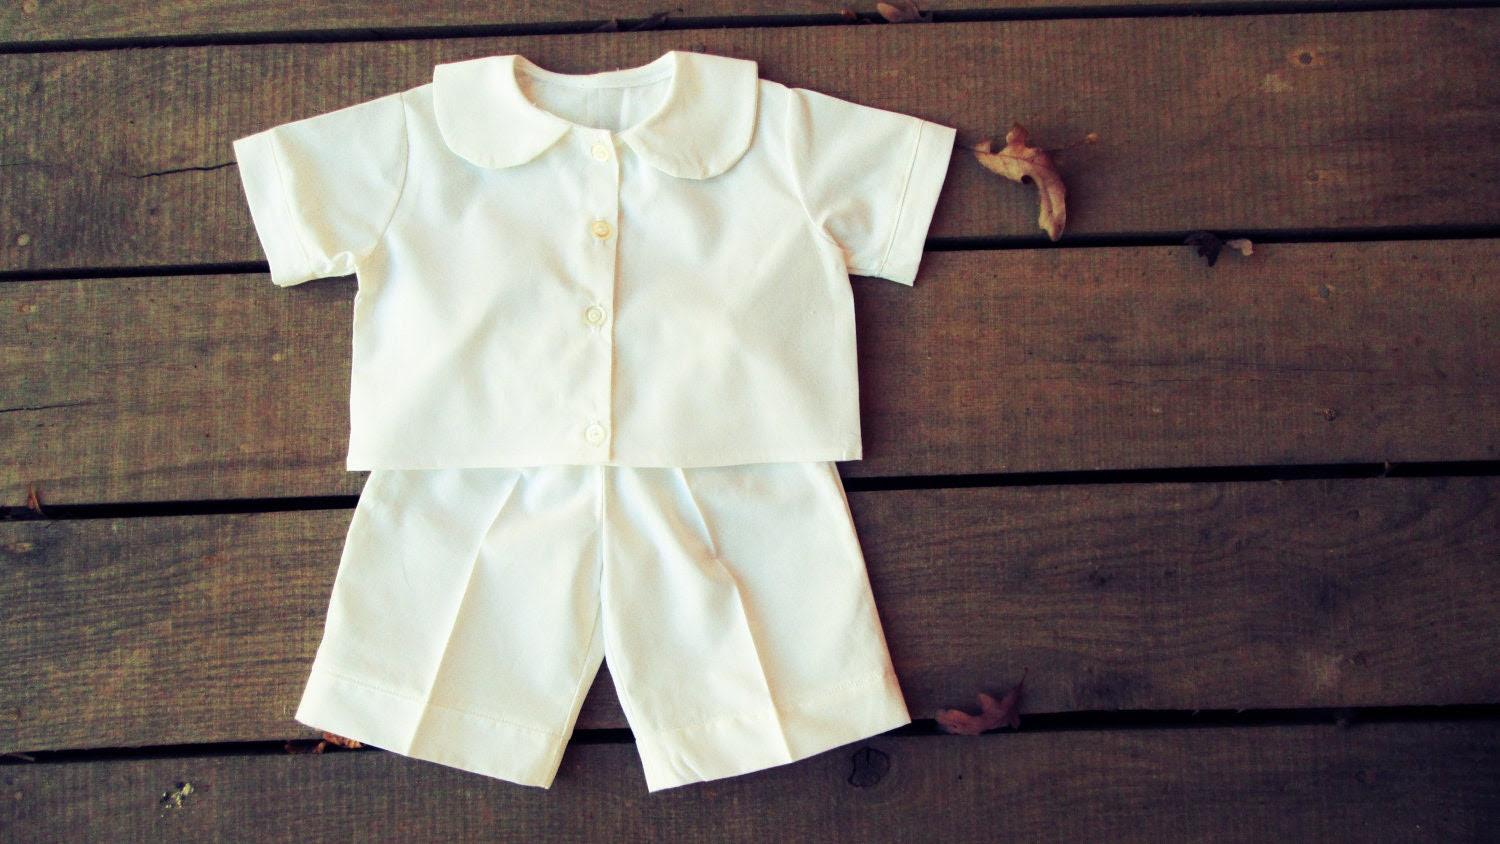 Boys Easter Outfit, Christening, dedication outfit peter pan collar button down shirt - white sizes 6, 9, 12, 18 months 2t